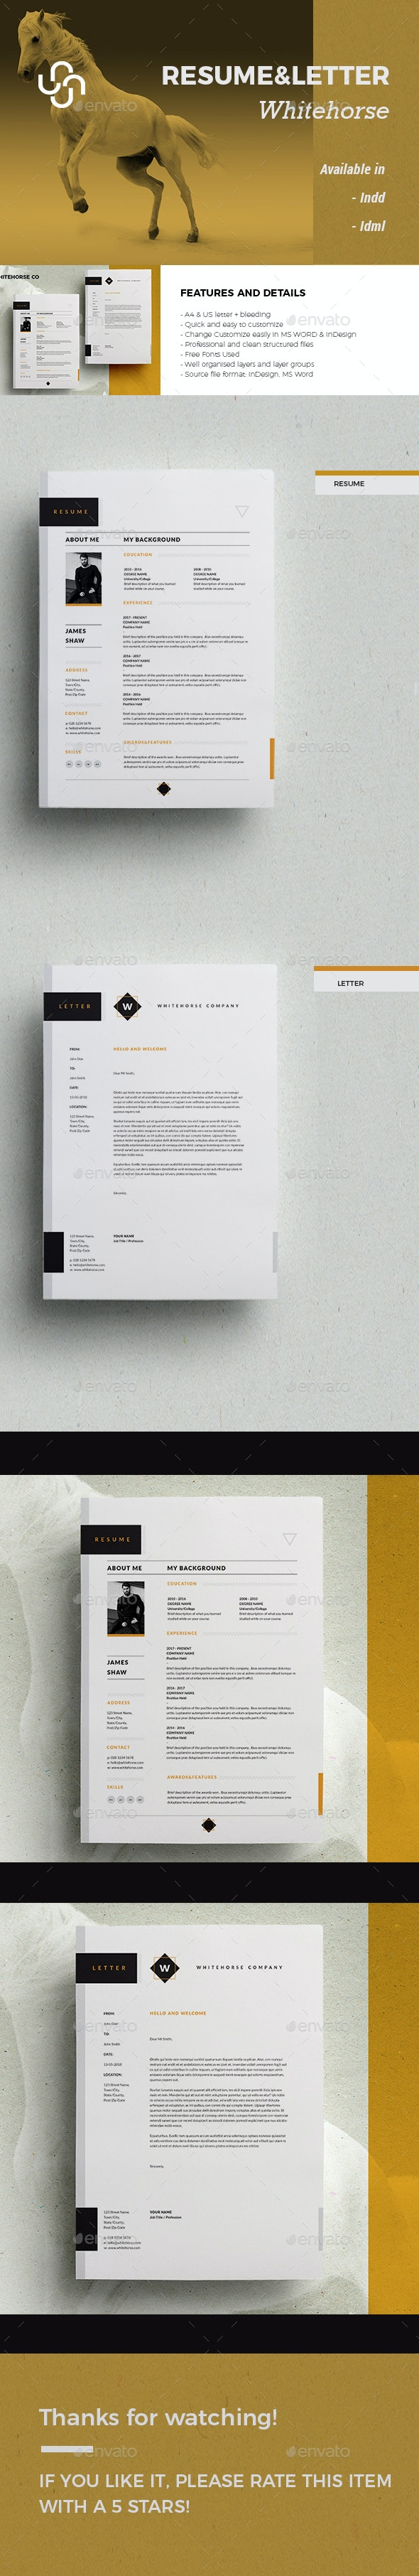 Resume and Letter - Whitehorse - Resumes Stationery